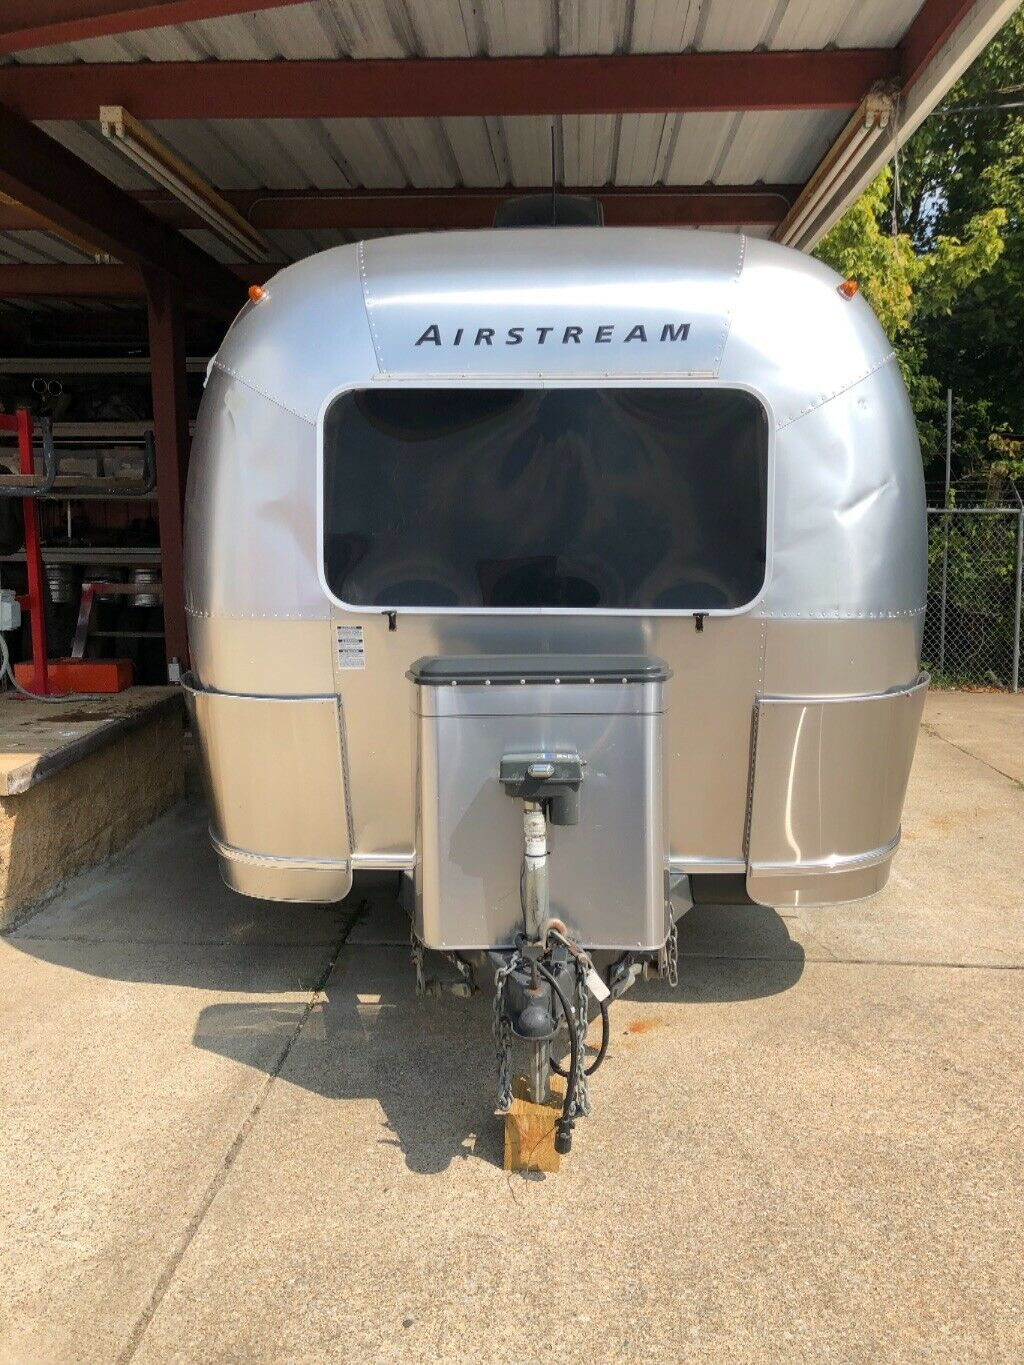 serviced 2004 Airstream Safari LS 25ft camper for sale